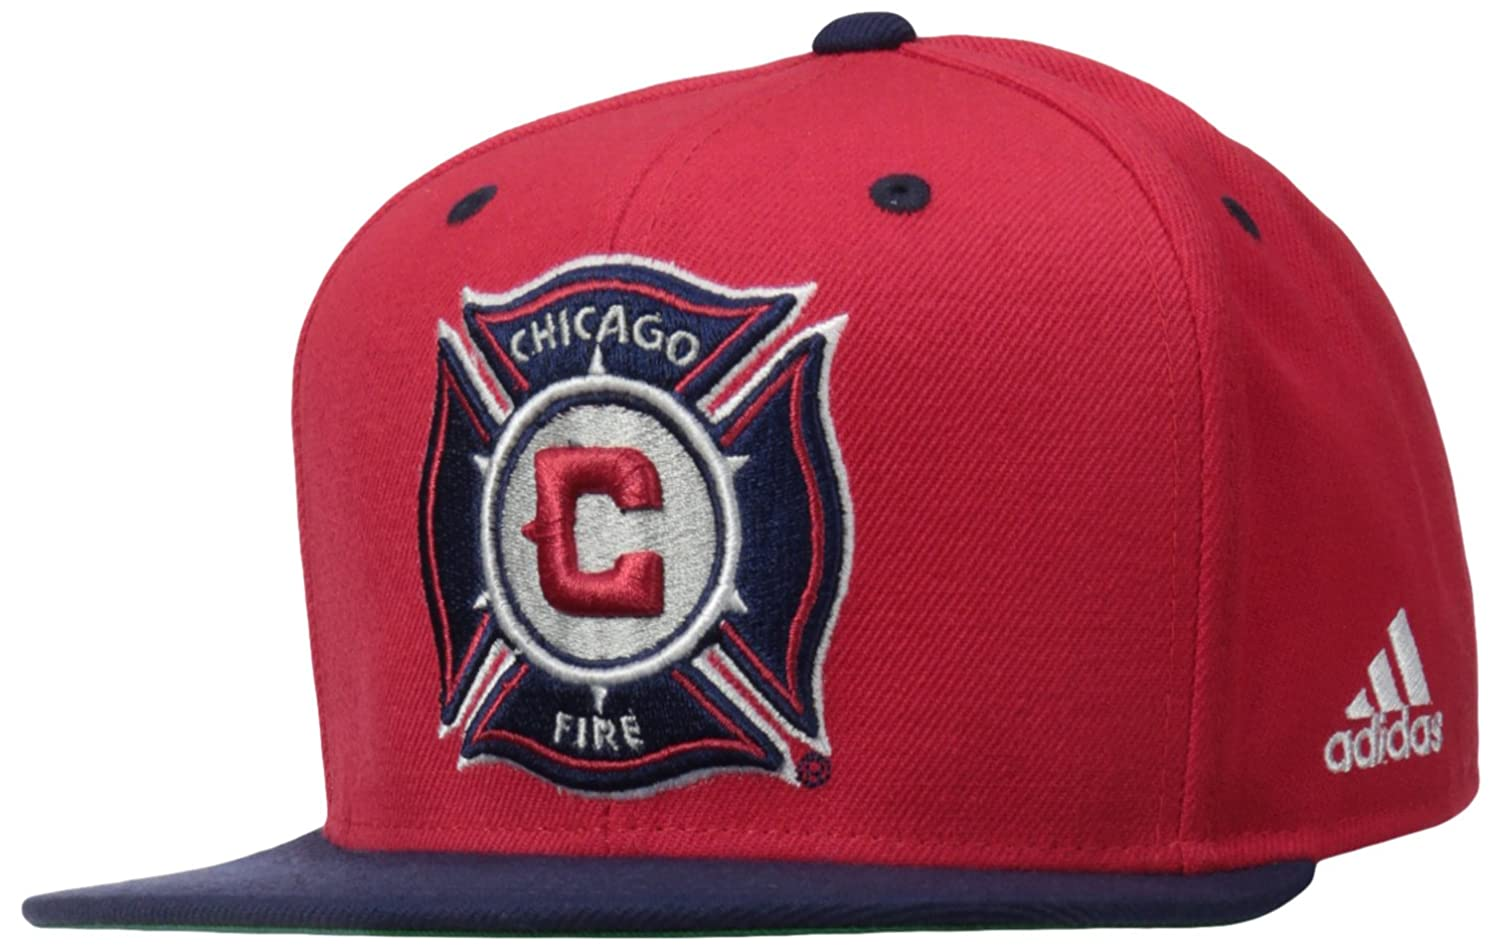 b52b2493760f89 Amazon.com : MLS Chicago Fire Men's Team Logo Two Tone Flat Brim Snapback  Hat, One Size, Red : Cold Weather Hats : Clothing